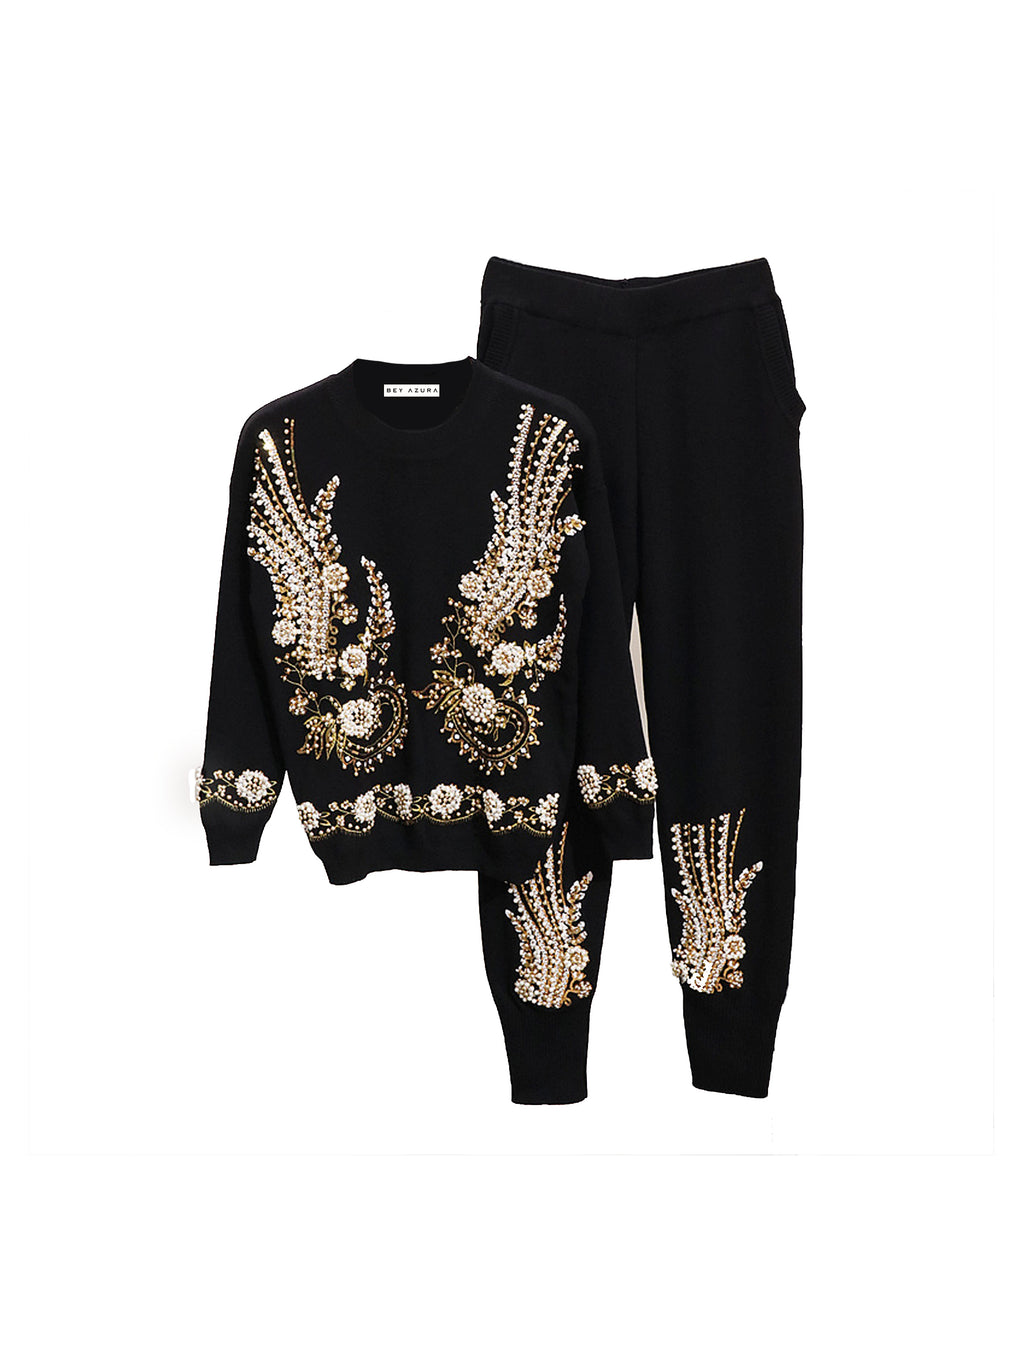 Two Piece Loungewear With Flower Gold Beadings - BEYAZURA.COM